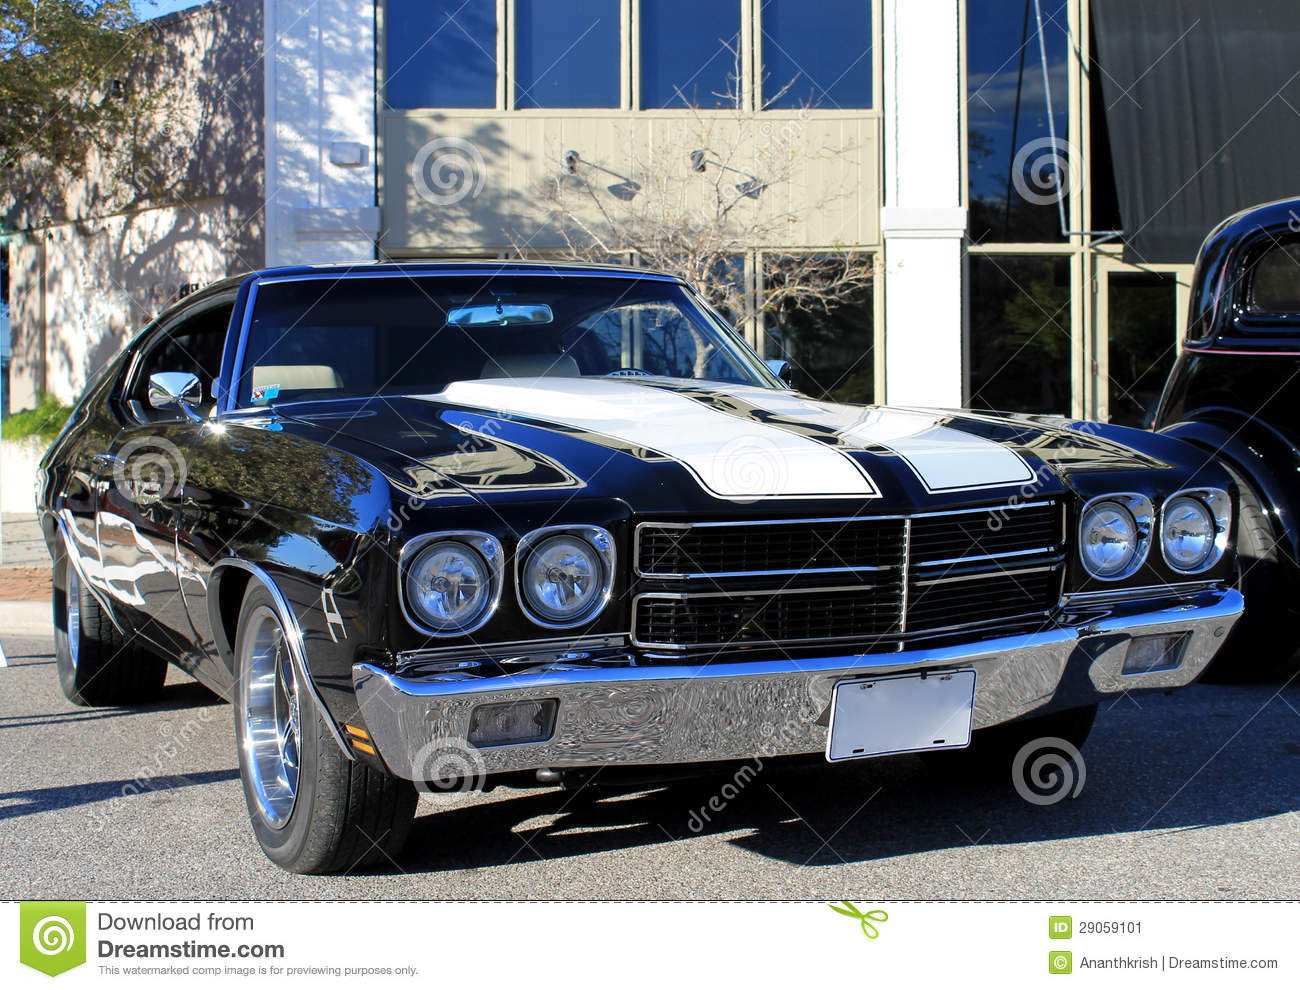 Old Chevelle SS Car stock image. Image of chevelle, coupe - 29059101